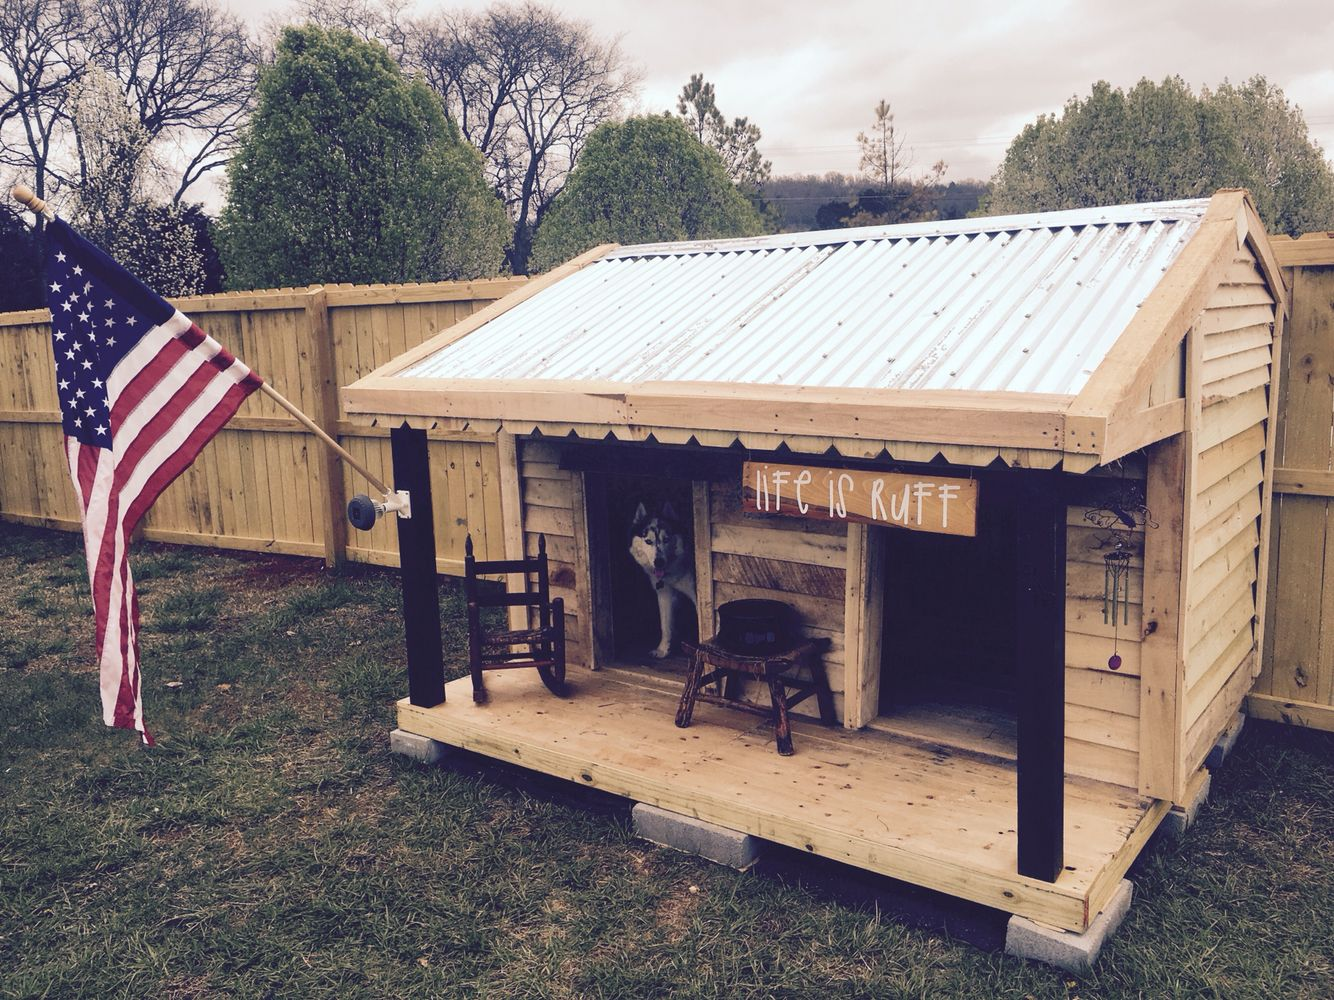 Stylish Pallet Dog Houses Designs | Fencing material, Dog houses and on shed designs, chicken coop designs, car designs, wolf house designs, birdhouse house designs, collar designs, chicken hut designs, squirrel house designs, play house designs, crab house designs, football house designs, hut house designs, cat house designs, rabbit hutch designs, chicken house designs, hawk house designs, house house designs, bunny house designs, scary house designs, flower house designs,